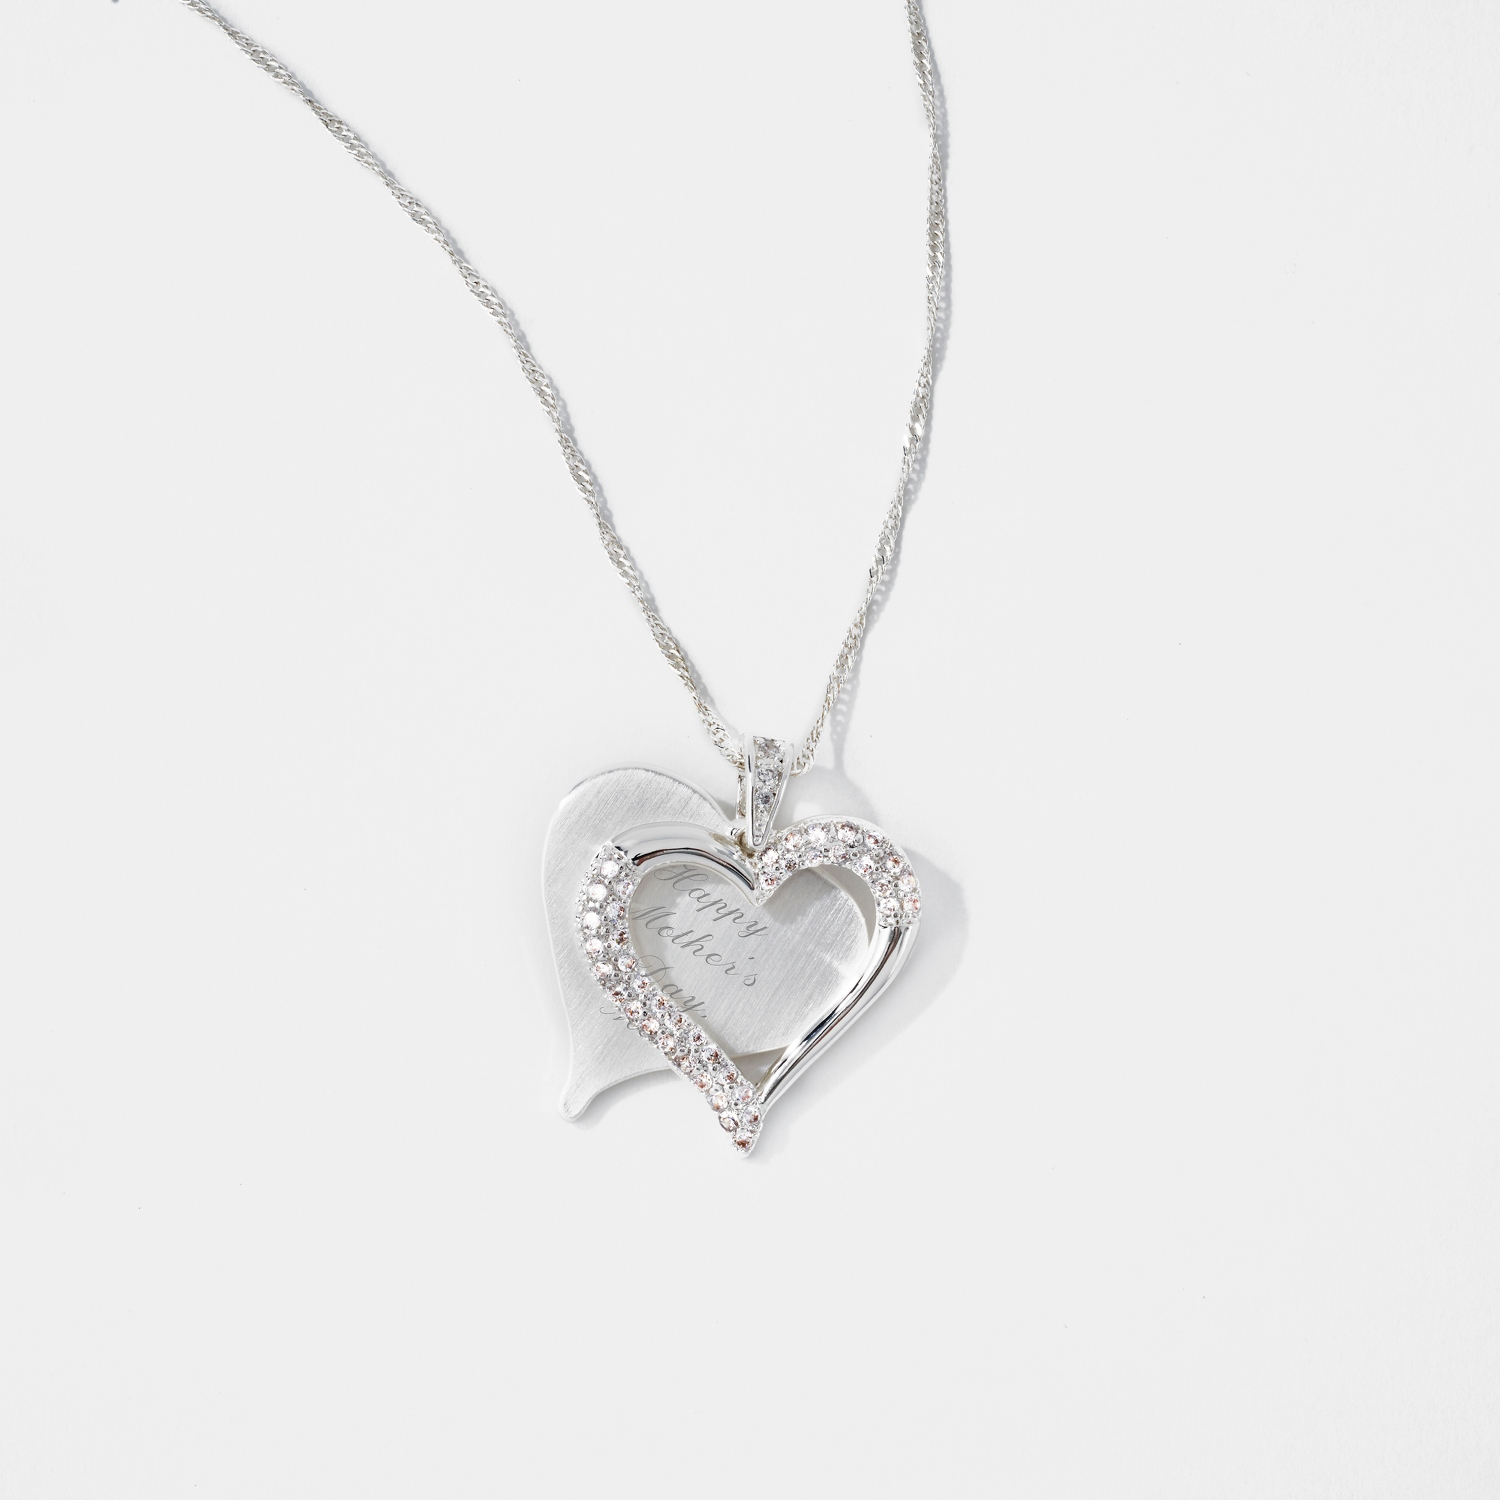 of hrts necklace frankfort nk heart nitro kentucky